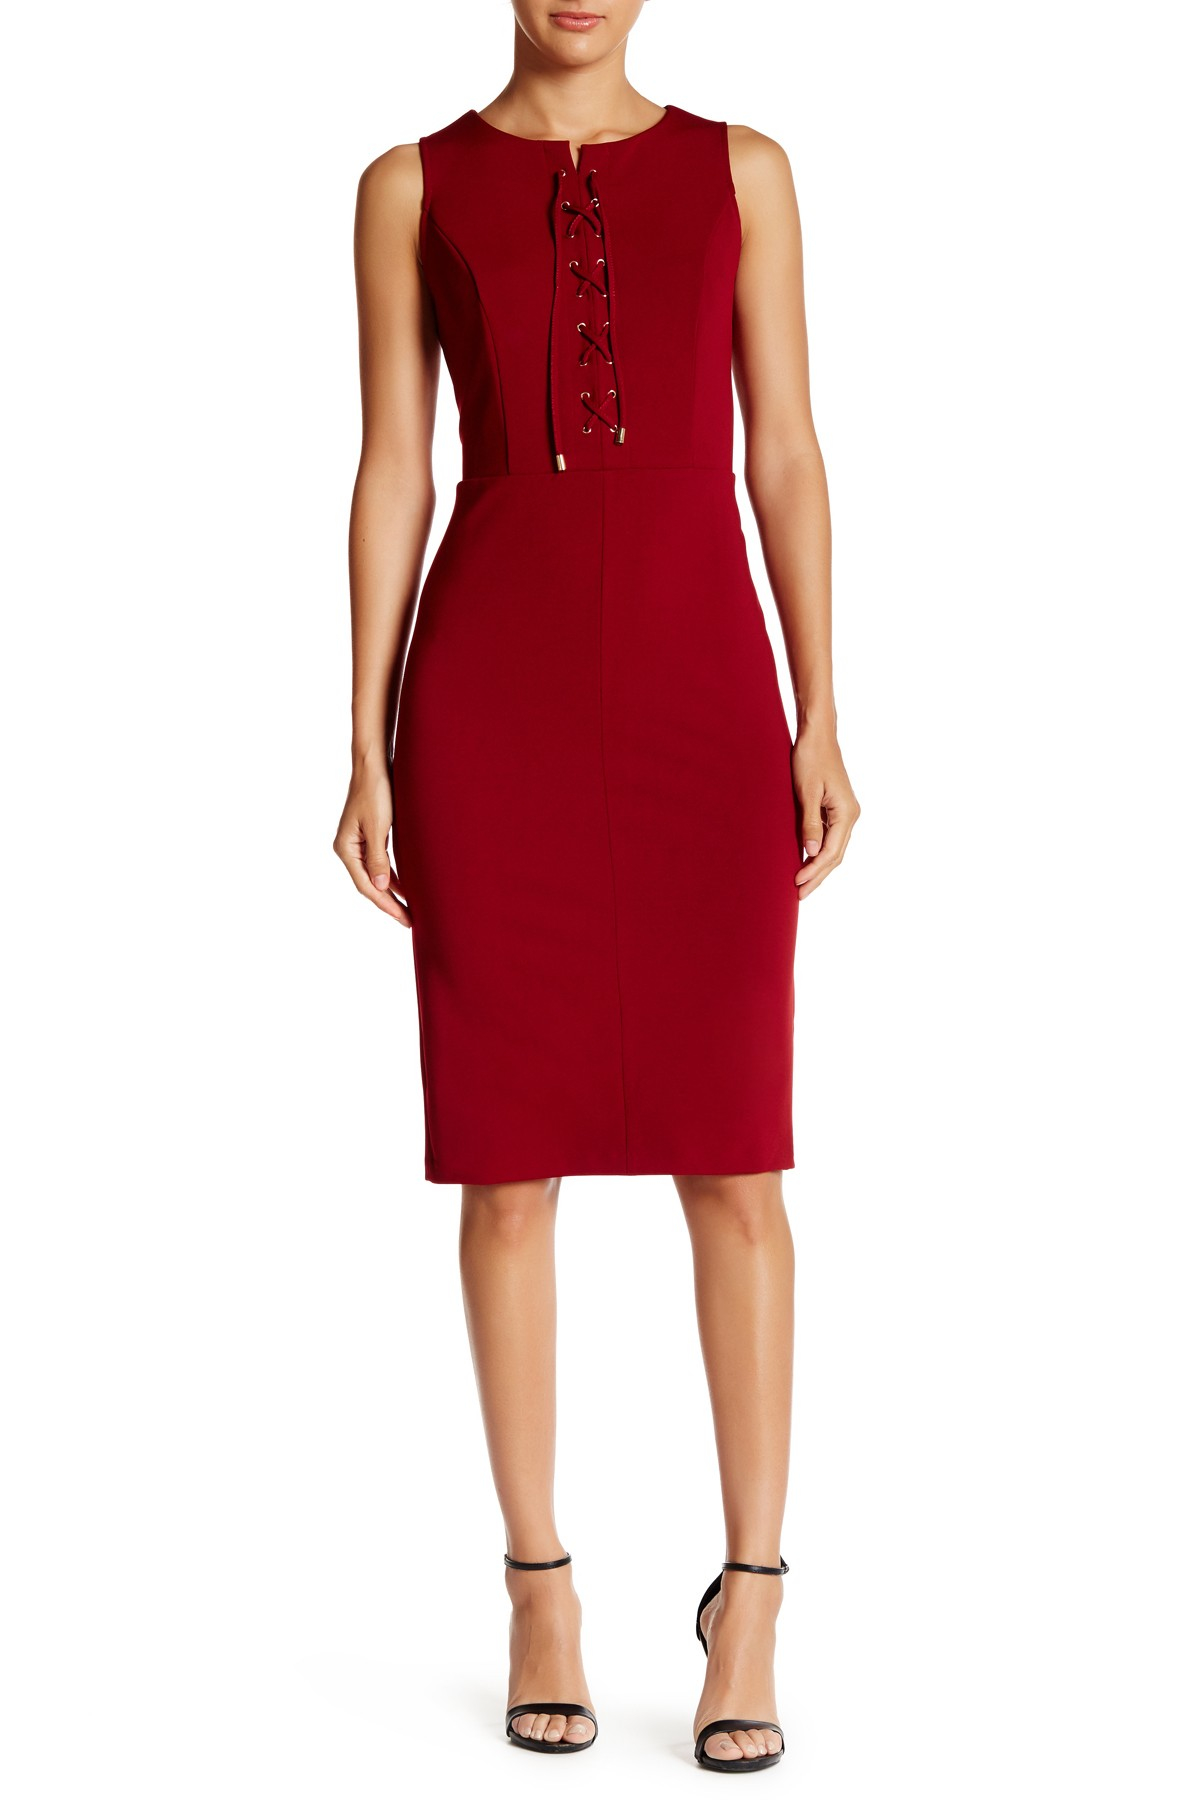 Eci lace up midi dress in red lyst for Nordstrom rack dresses pour mariage